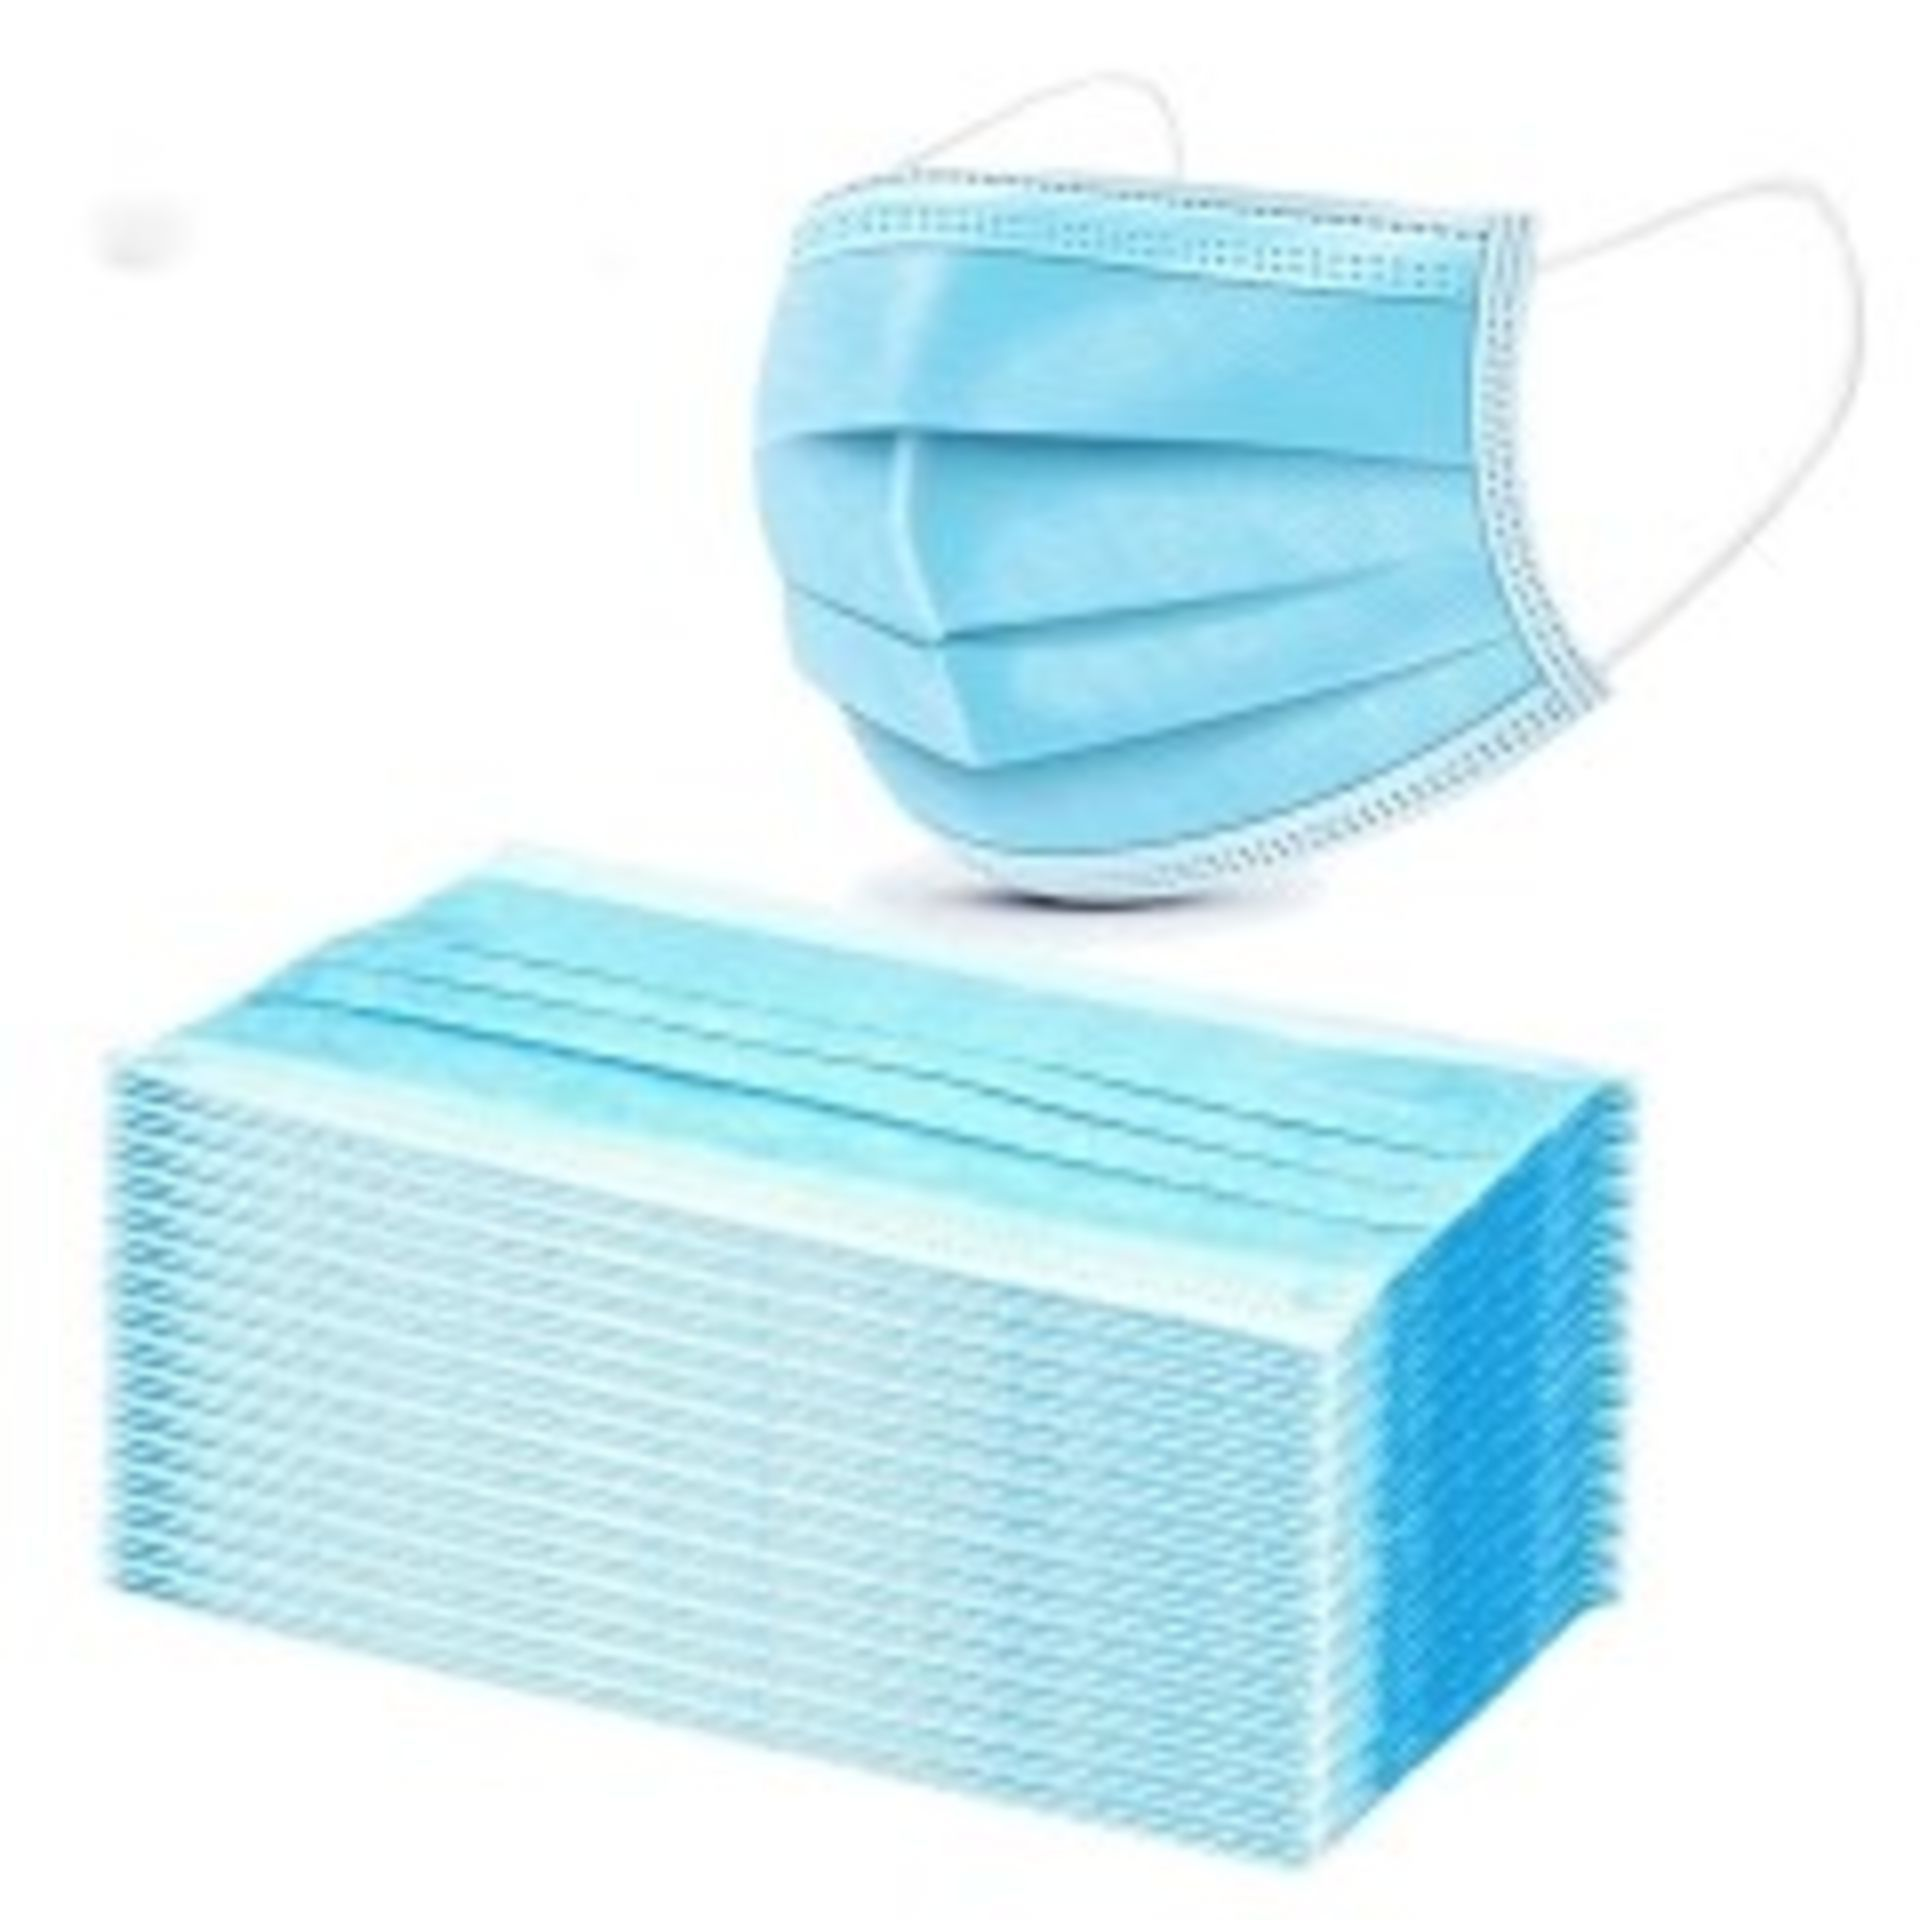 Lot 33 - 100 IN TOTAL 3 X PLY DISPOSABLE FACE MASKS *NO VAT*